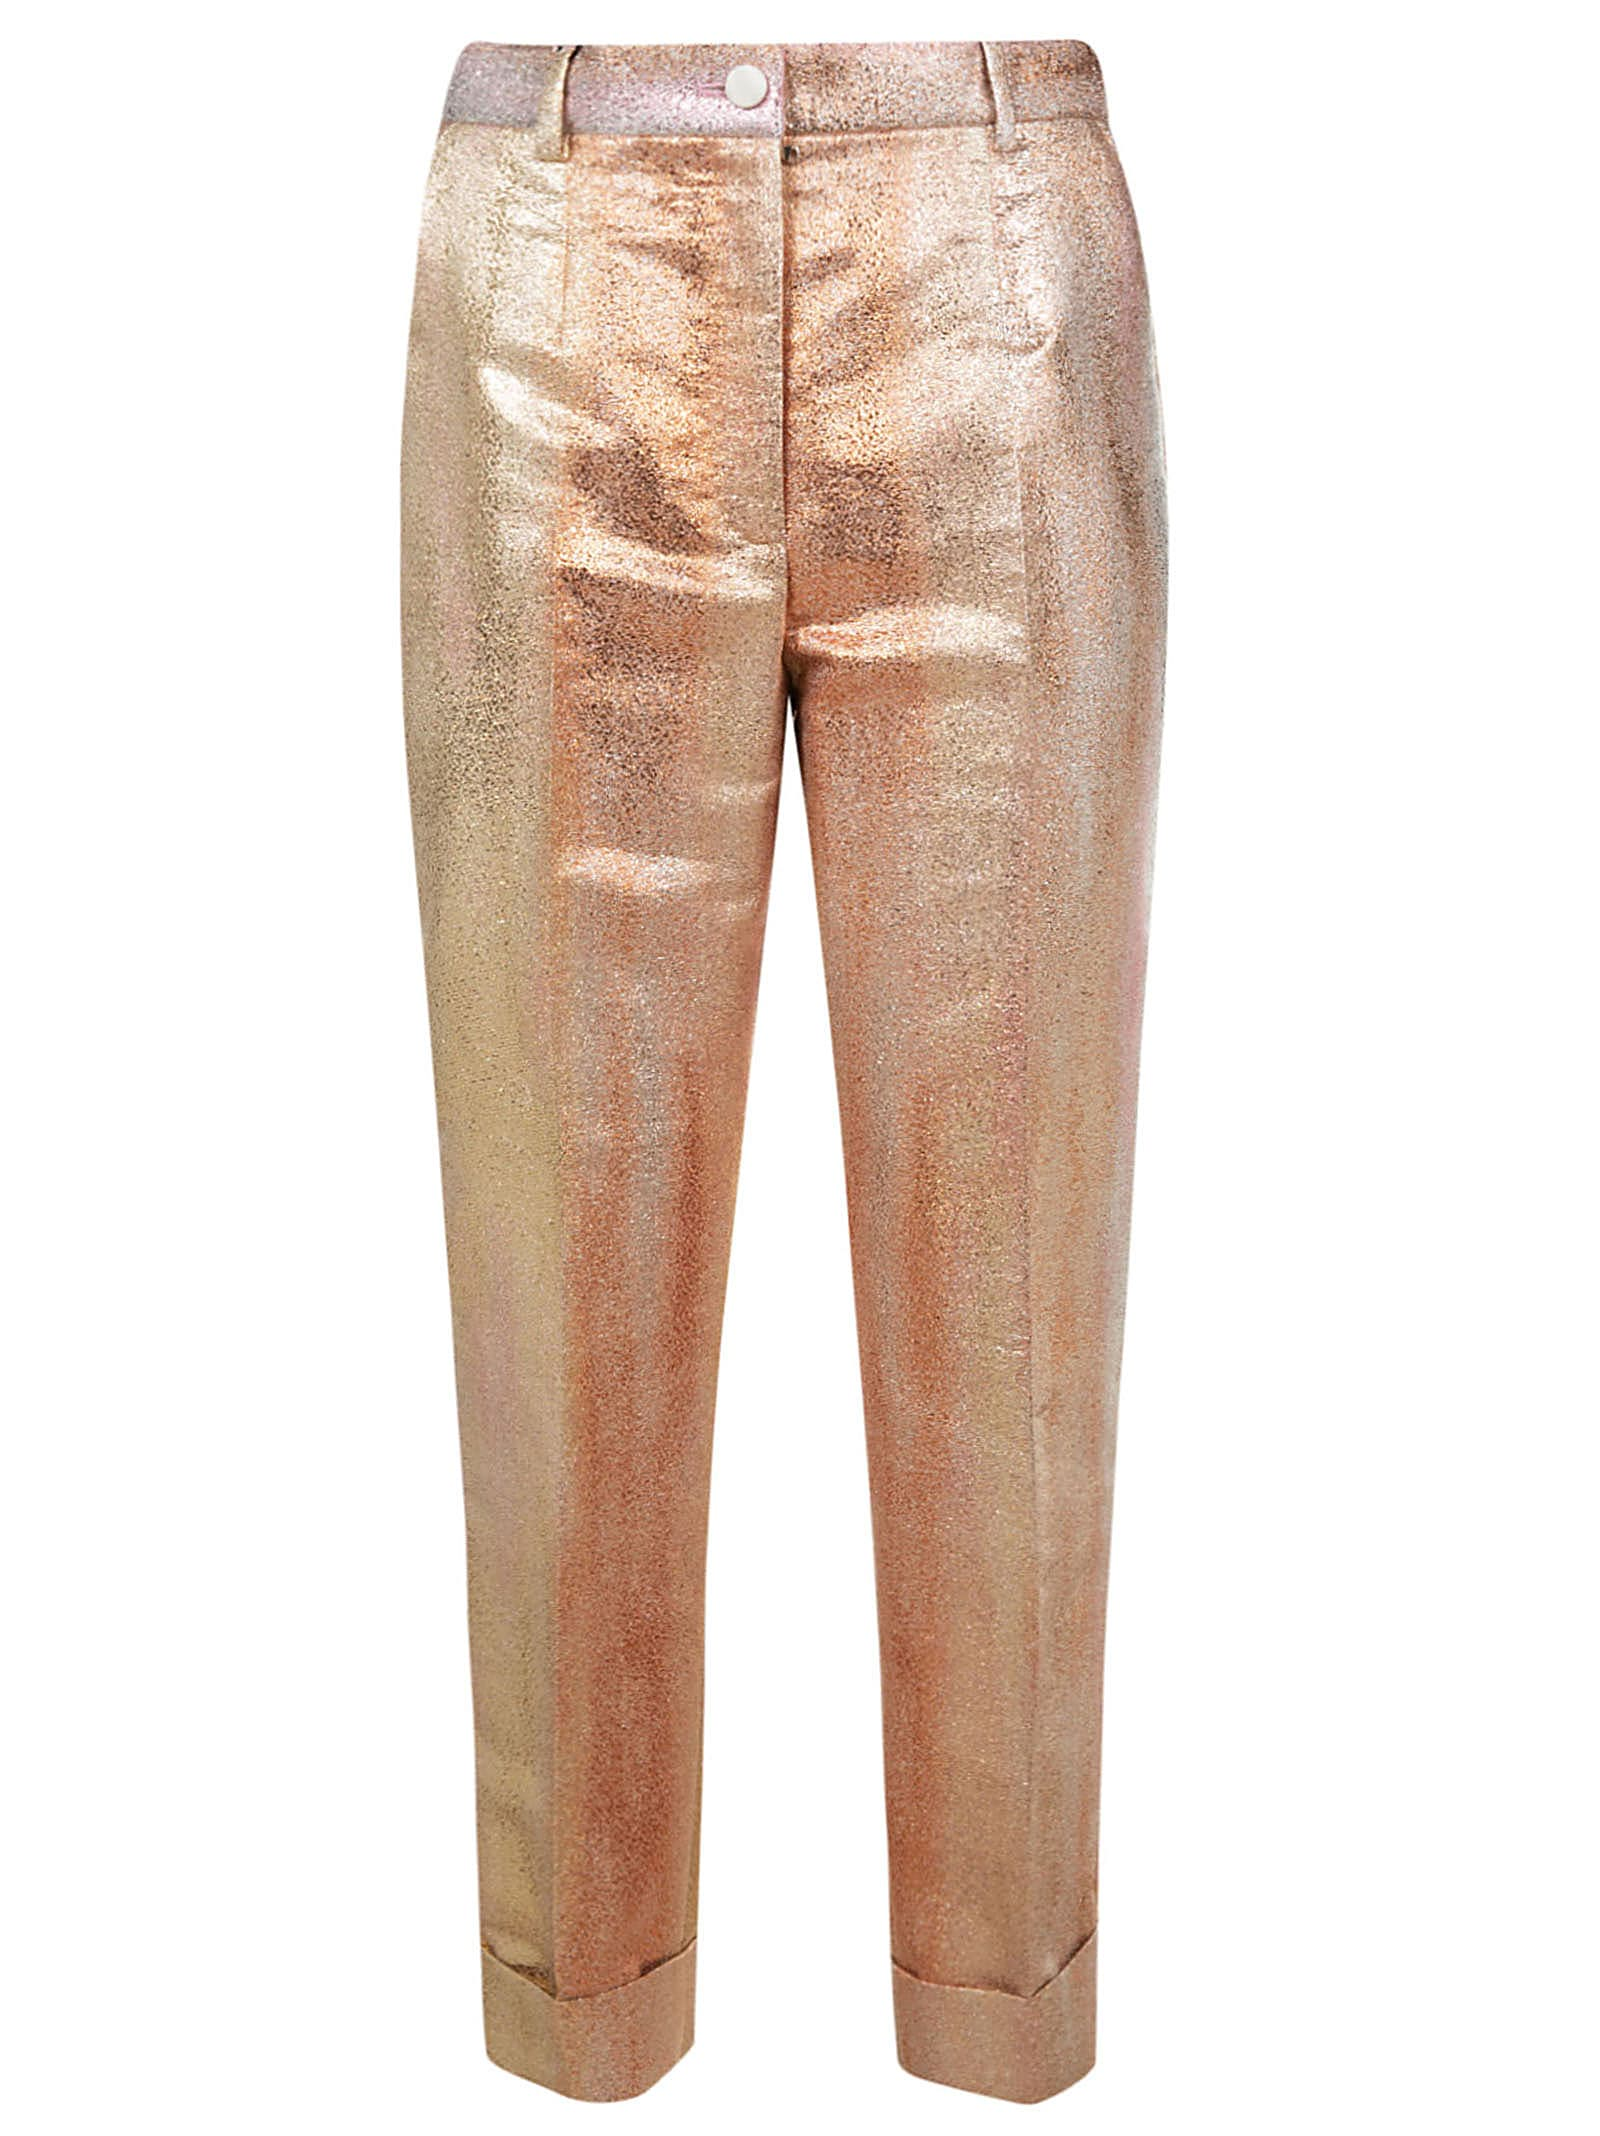 Dolce & Gabbana Metallic Trousers